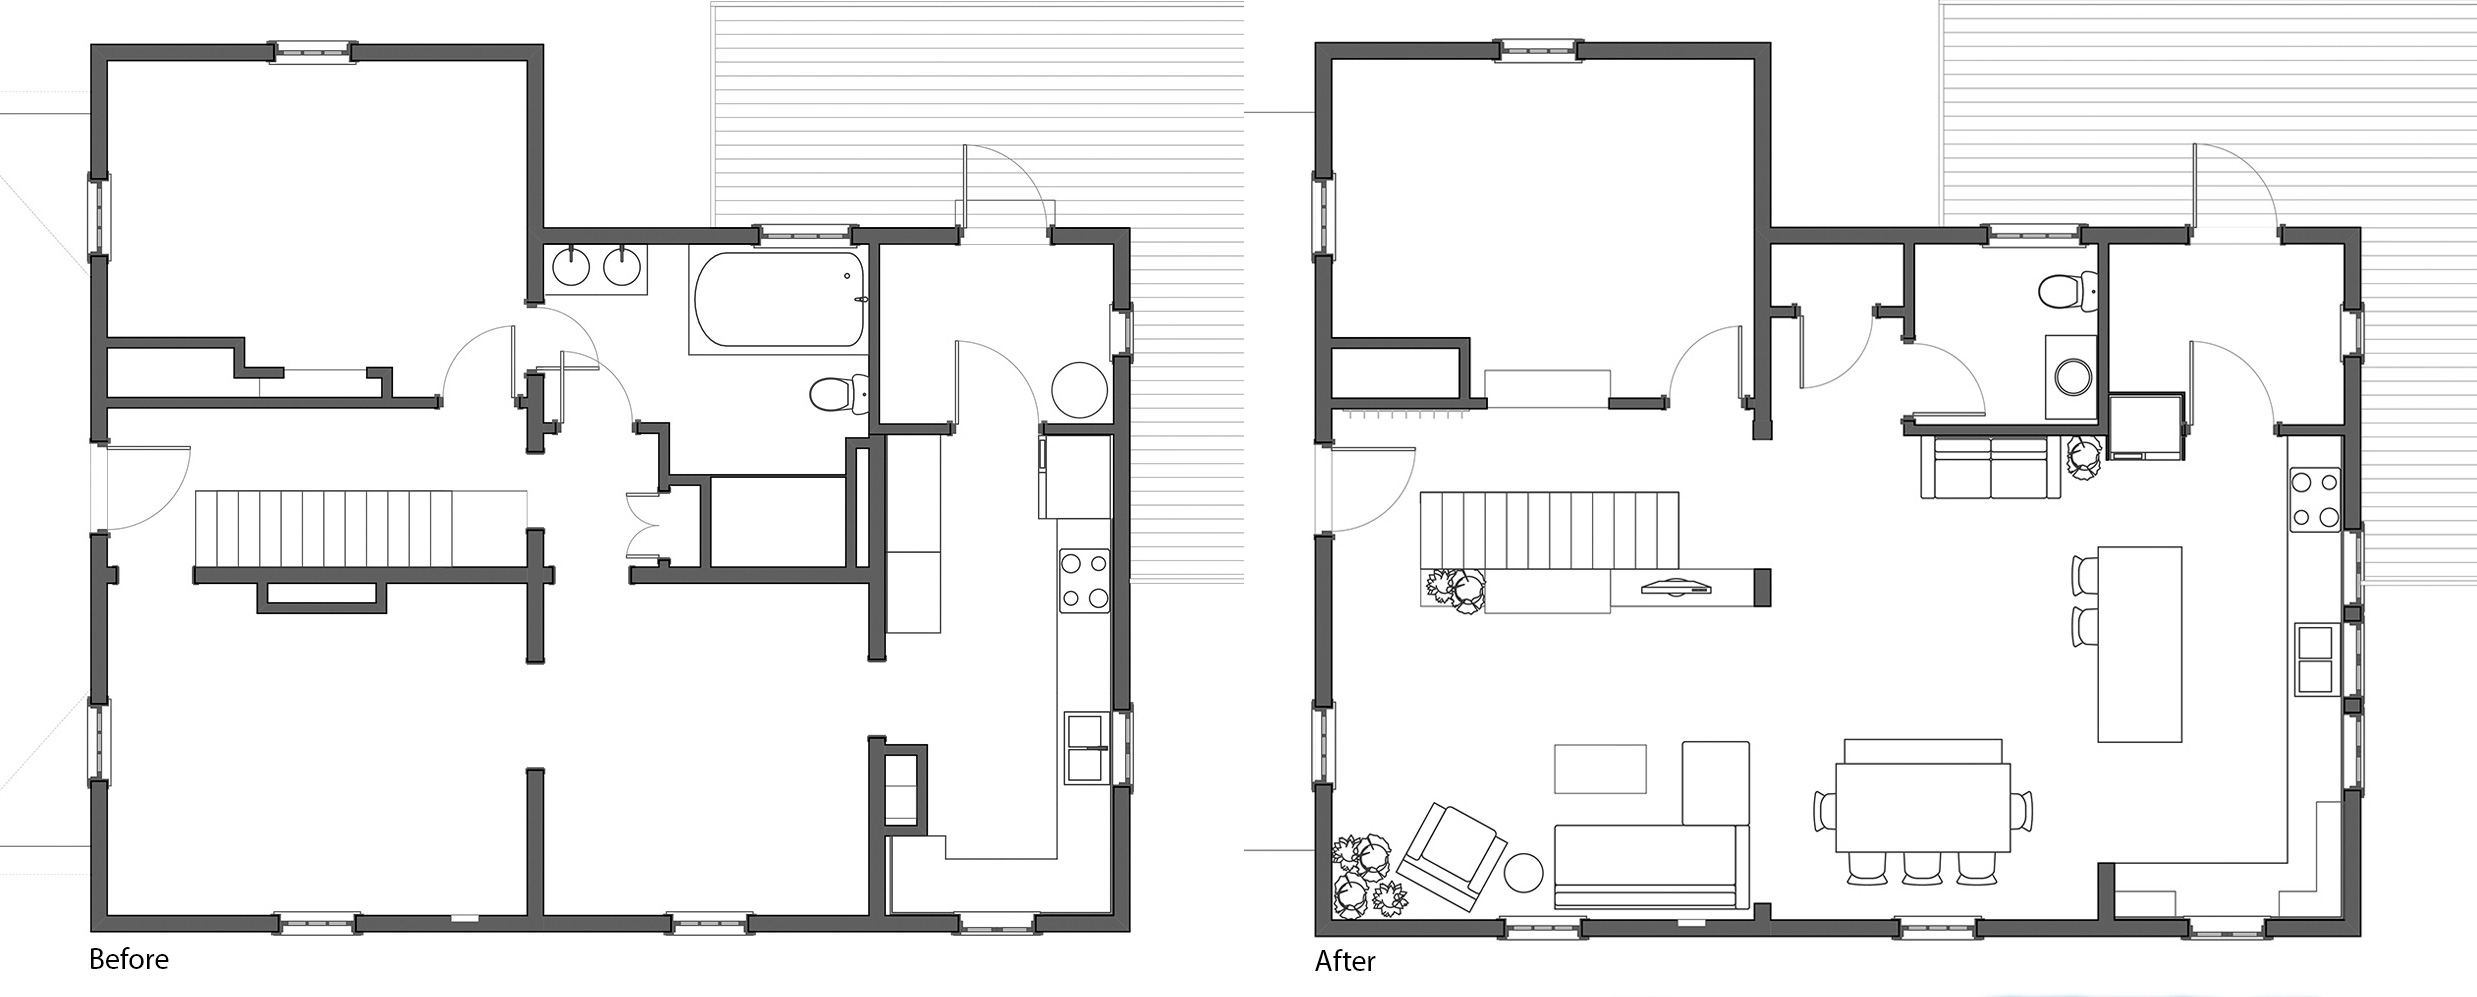 BEFORE & AFTER FLOOR PLANS